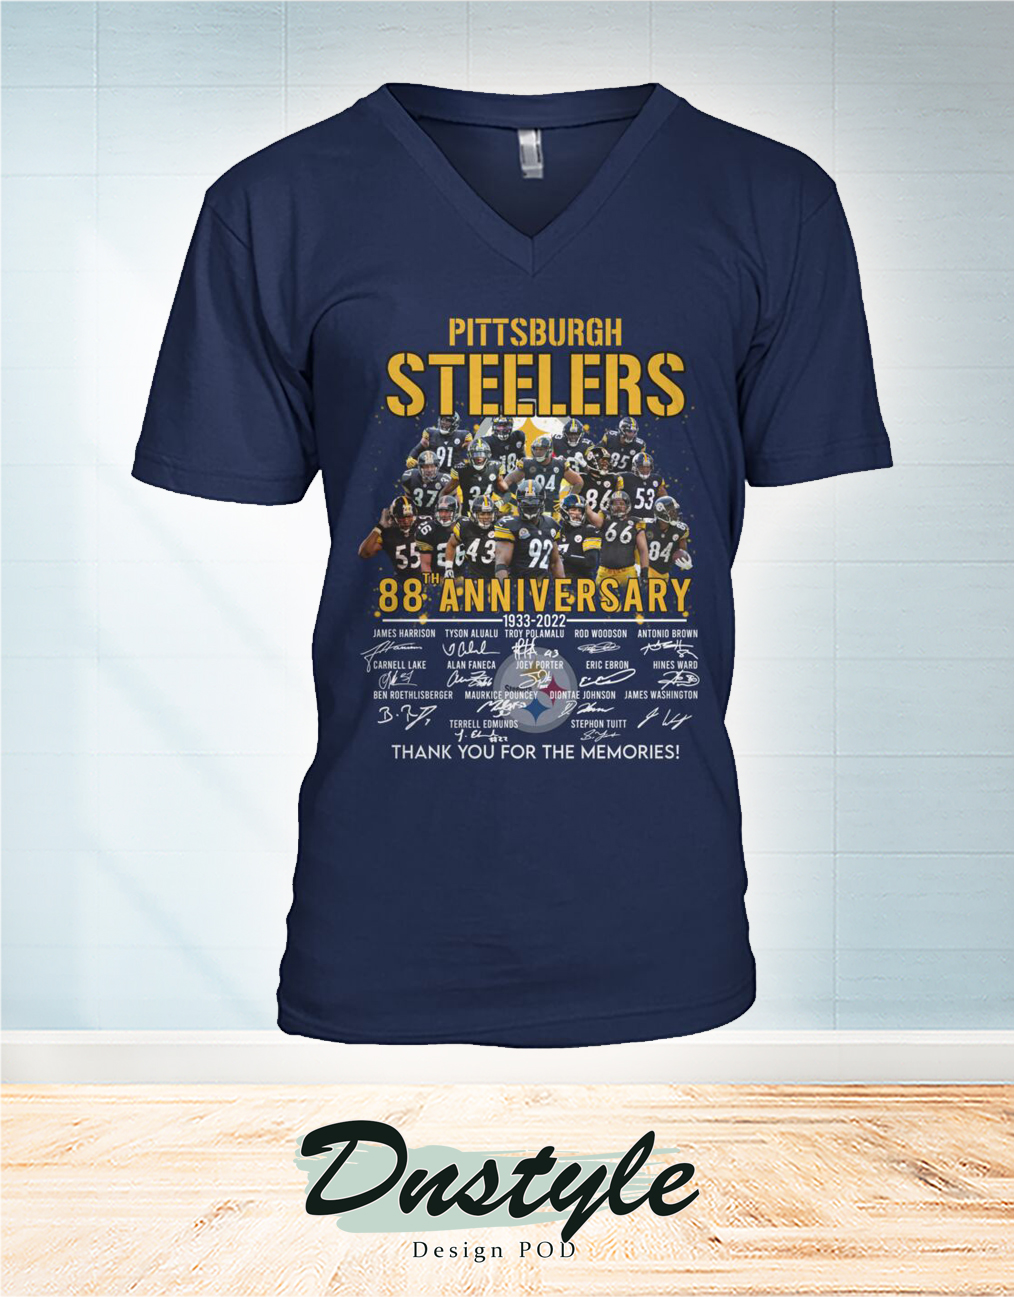 Pittsburgh steelers 88 anniversary signature thank you for the memories v-neck